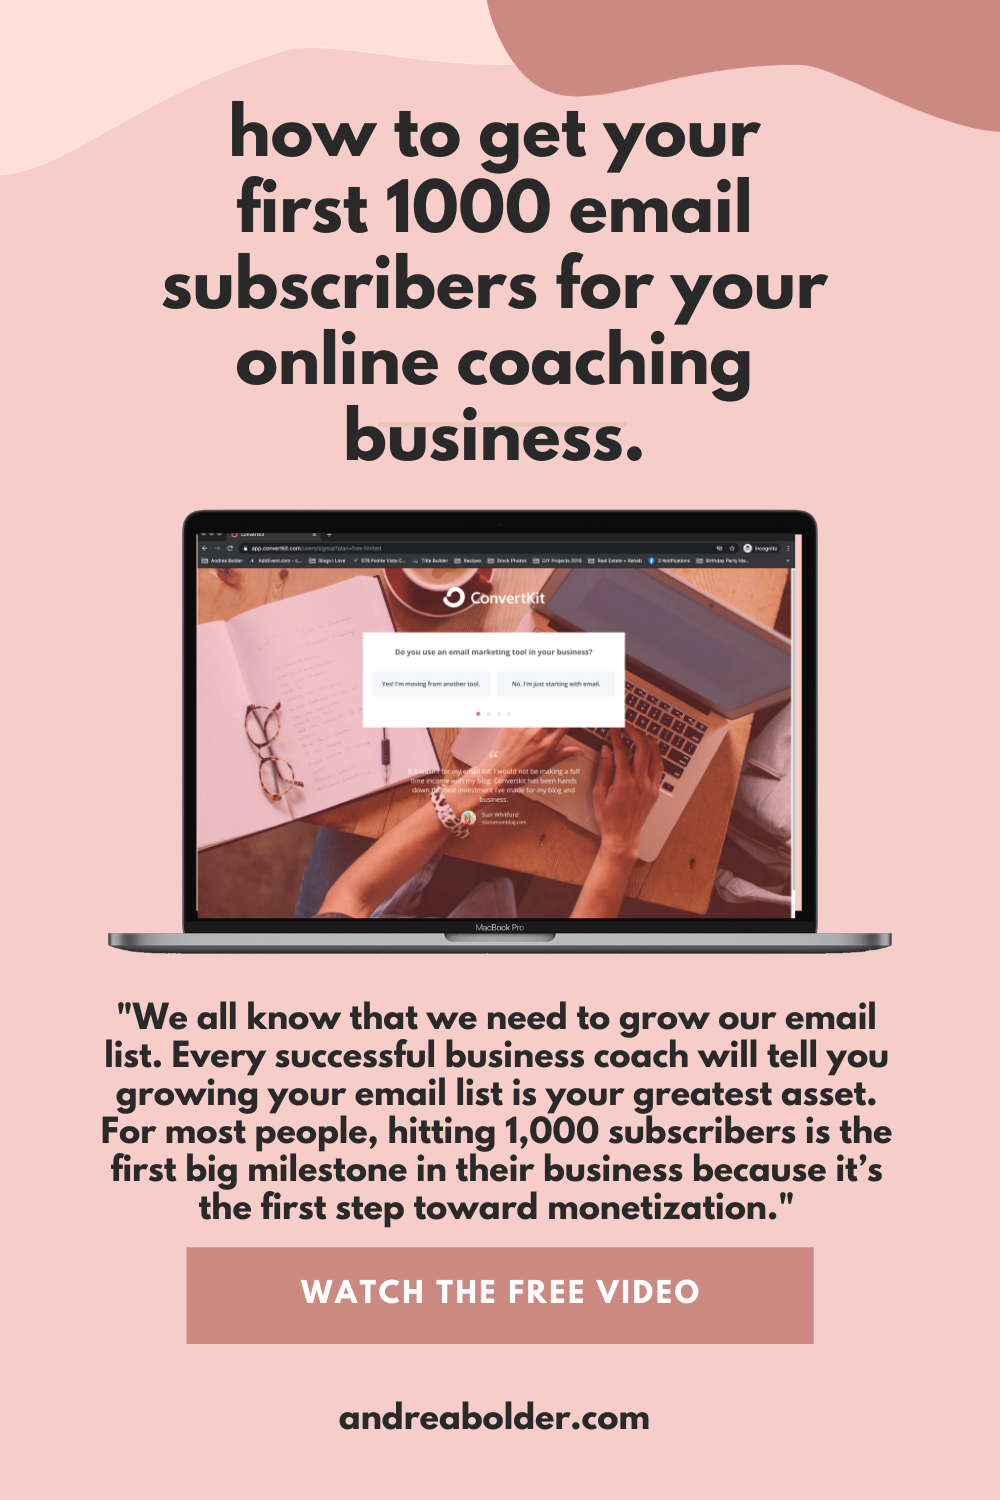 How To Get Your First 1000 Email Subscribers For Your Online Coaching Business